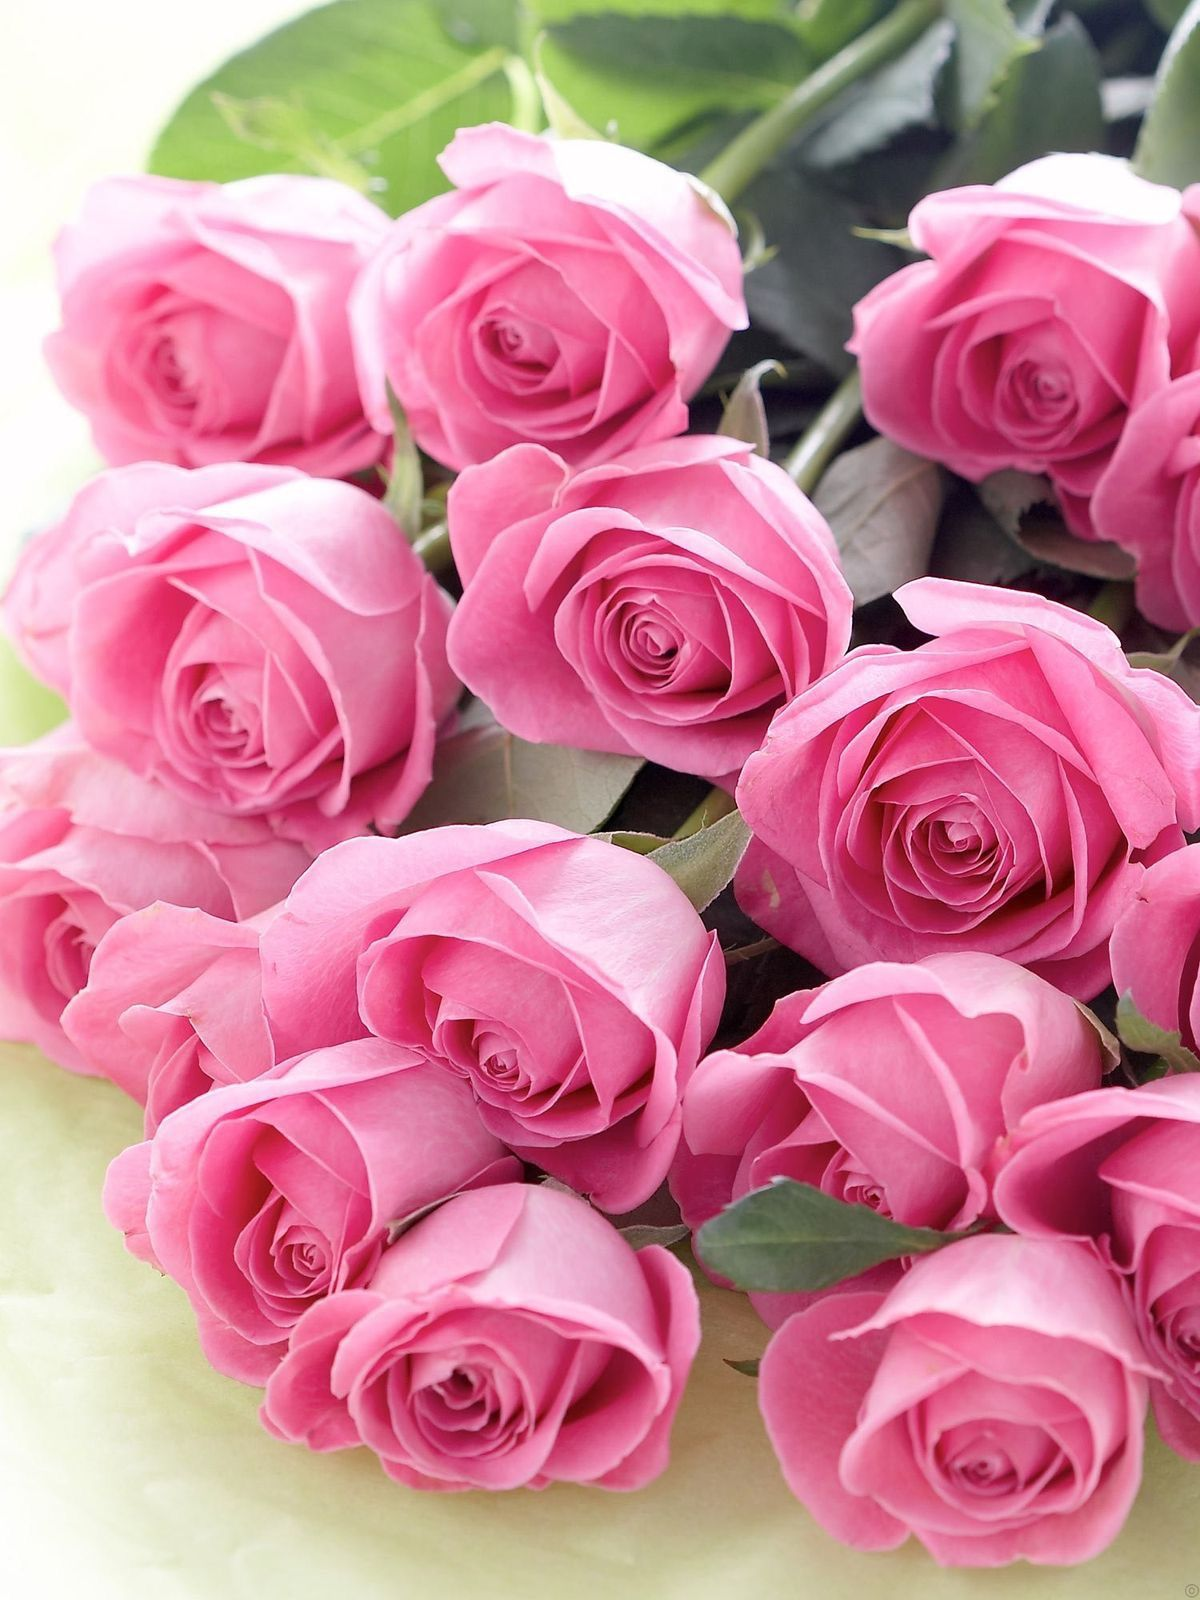 Pink roses b e a u t i f u l r o s e s pinterest pink roses